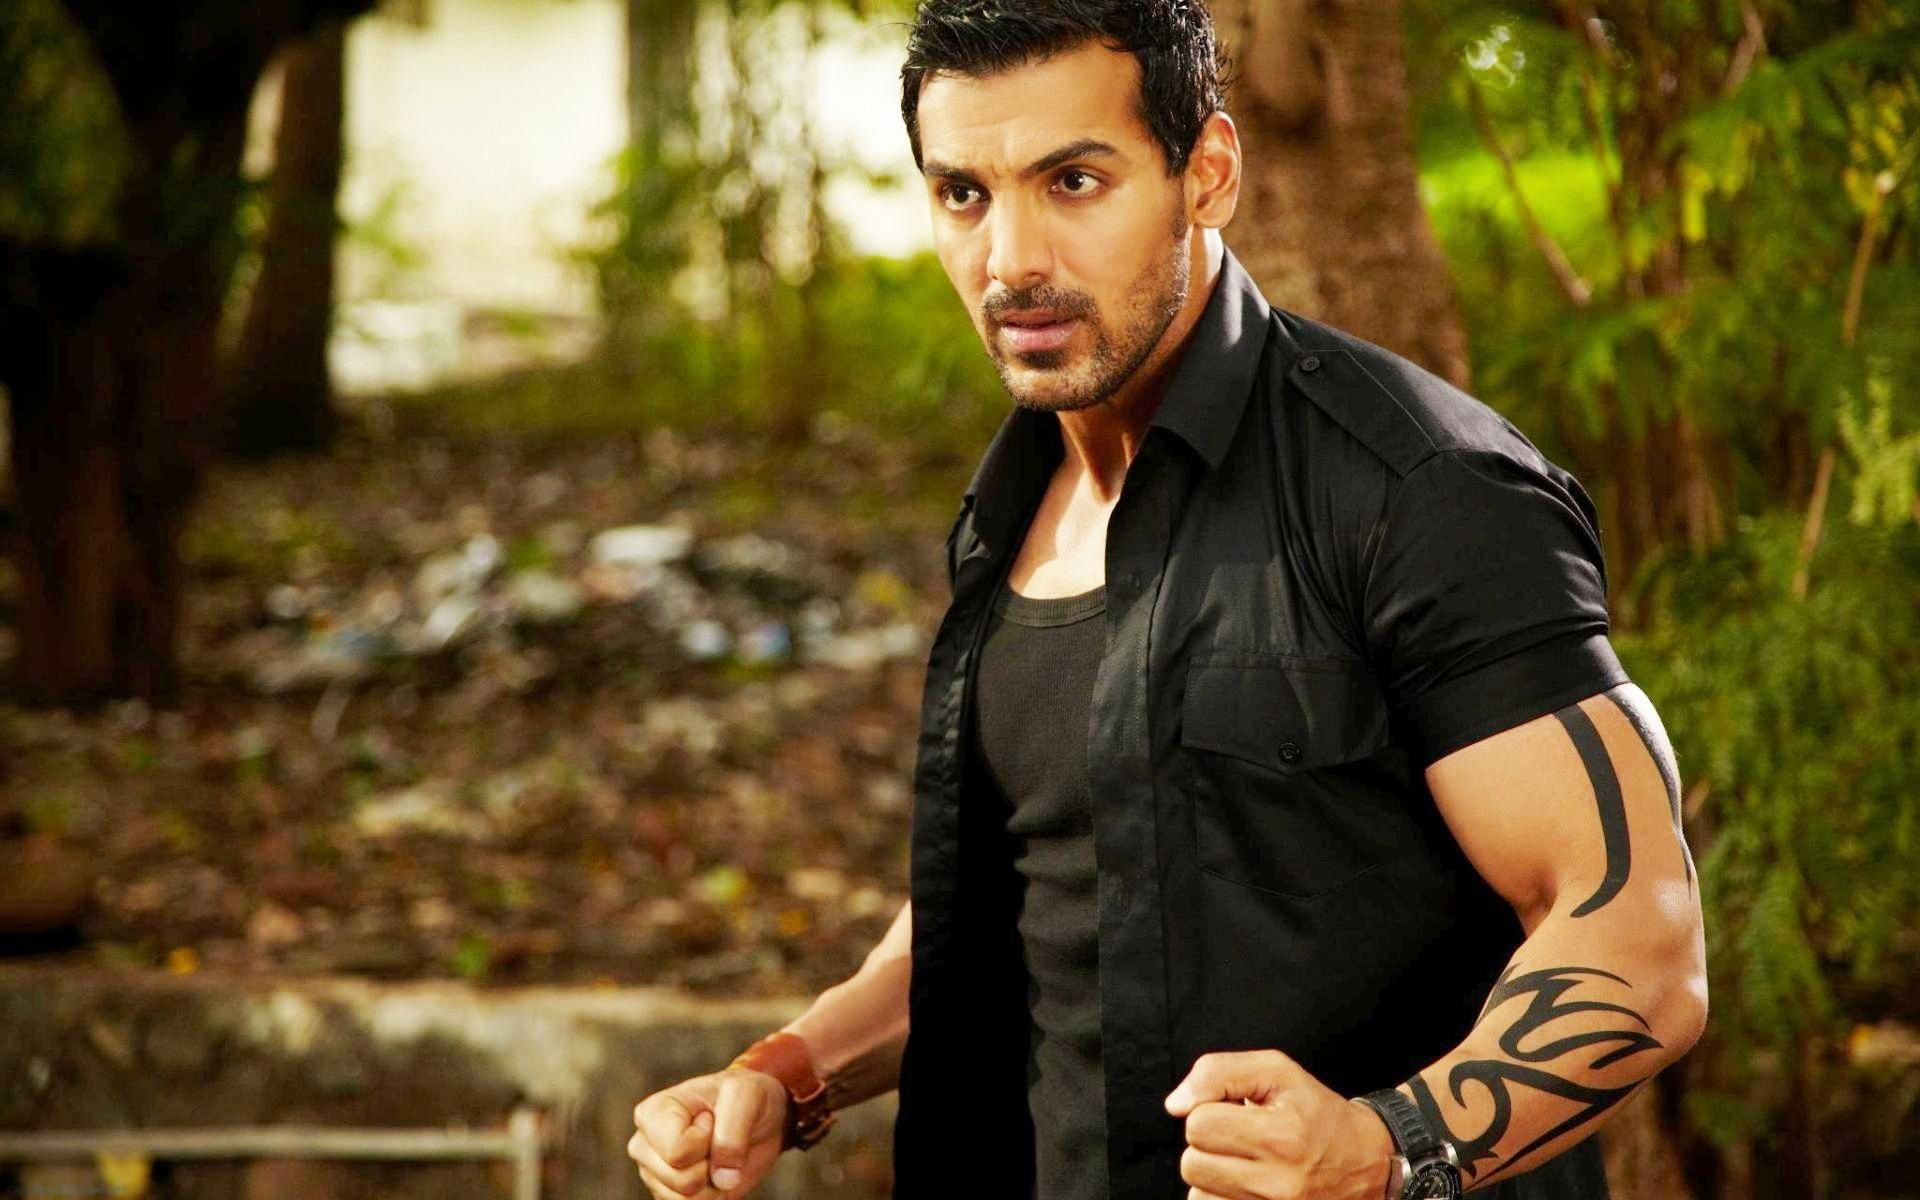 Hd wallpaper john abraham - John Abraham Hd Wallpapers Free Download Latest John Abraham Hd Wallpapers For Computer Mobile